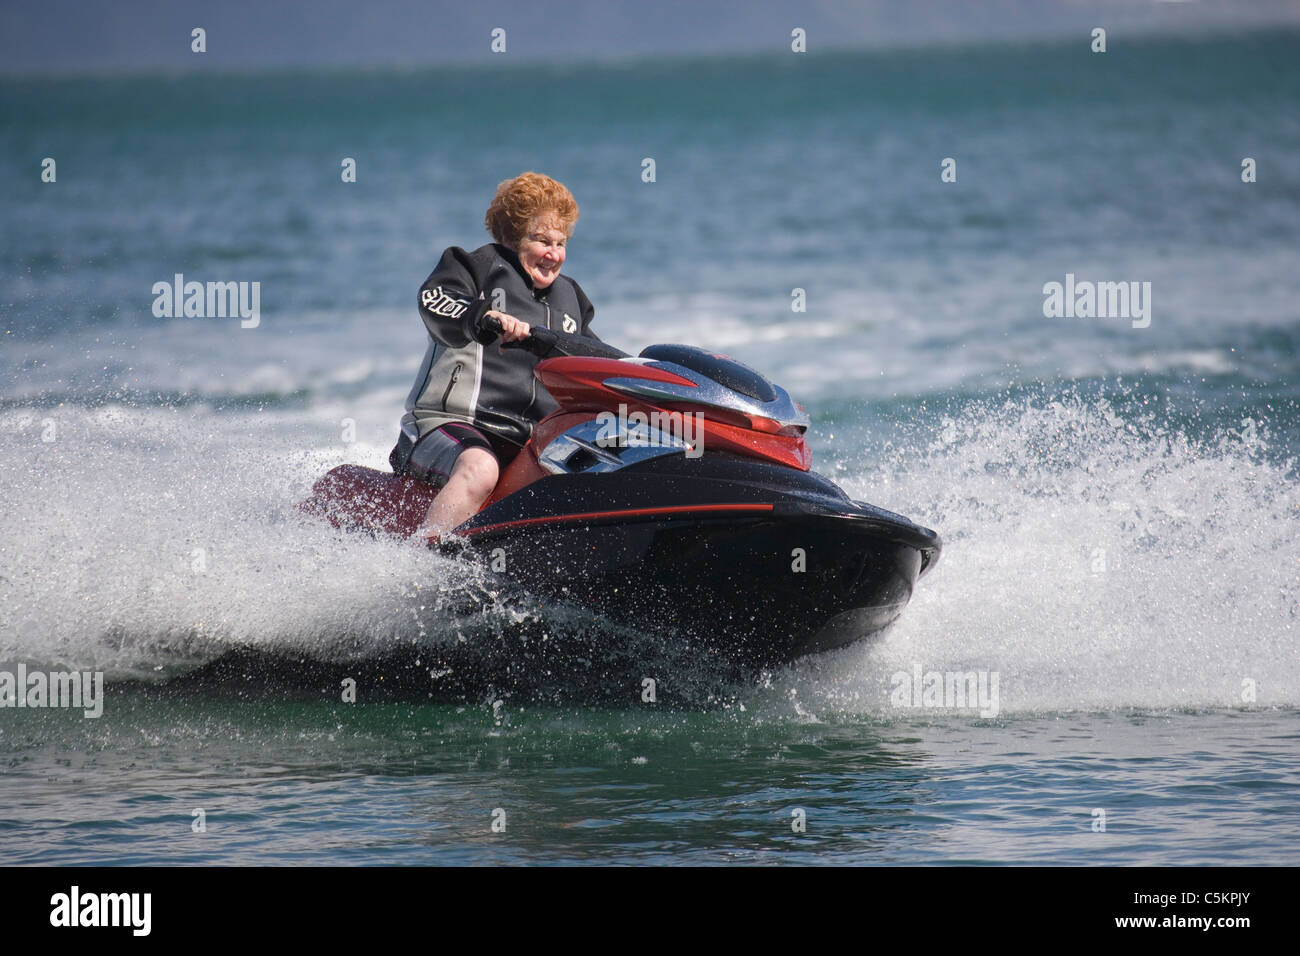 woman jet skiing photos woman jet skiing images alamy. Black Bedroom Furniture Sets. Home Design Ideas